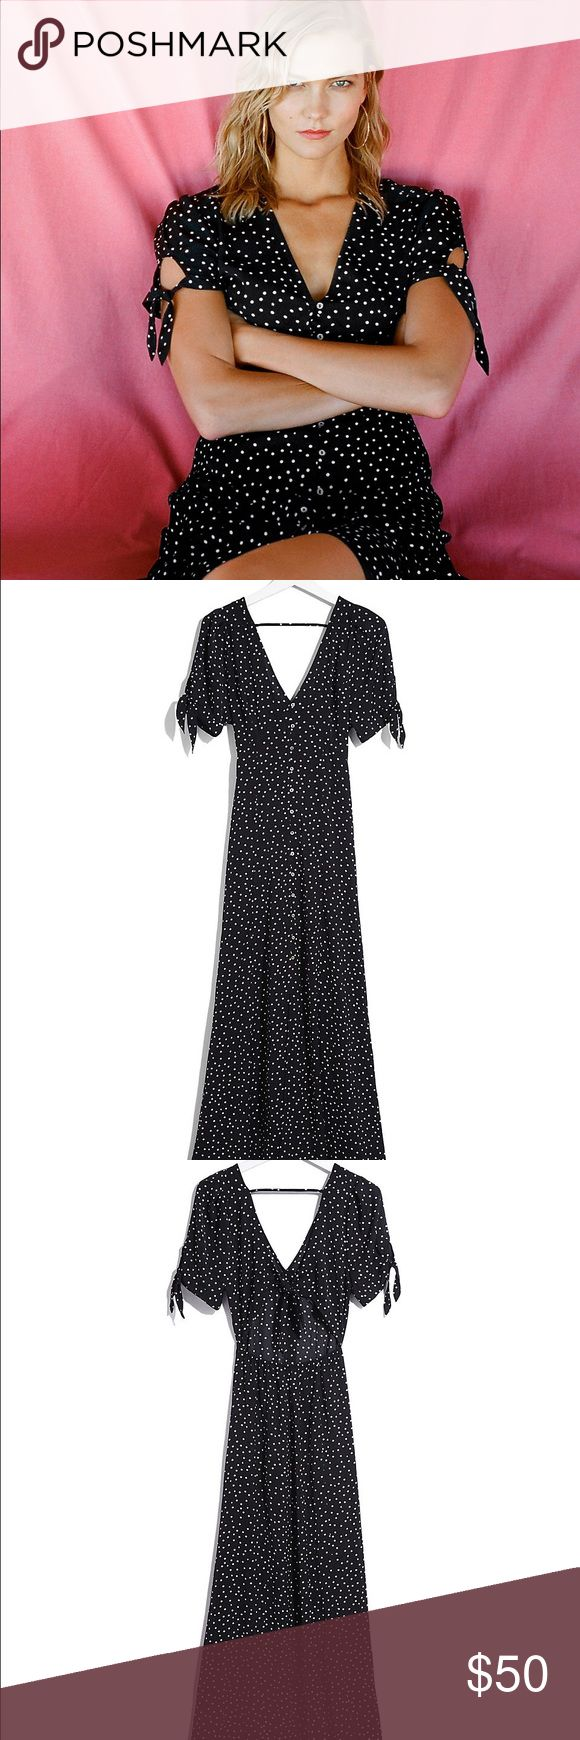 Karlie Kloss Dot Print Maxi Dress Adorable polka dot maxi dress from Karlie Kloss x Express collection. Completely sold out online & in stores. Features tied sleeves, flattering button up top, partially open back, and a front slit. Wore this once on Easter Sunday and received SO many compliments. Condition is like new, and paid $88 plus tax. Size 4. Flynn Skye Dresses Maxi